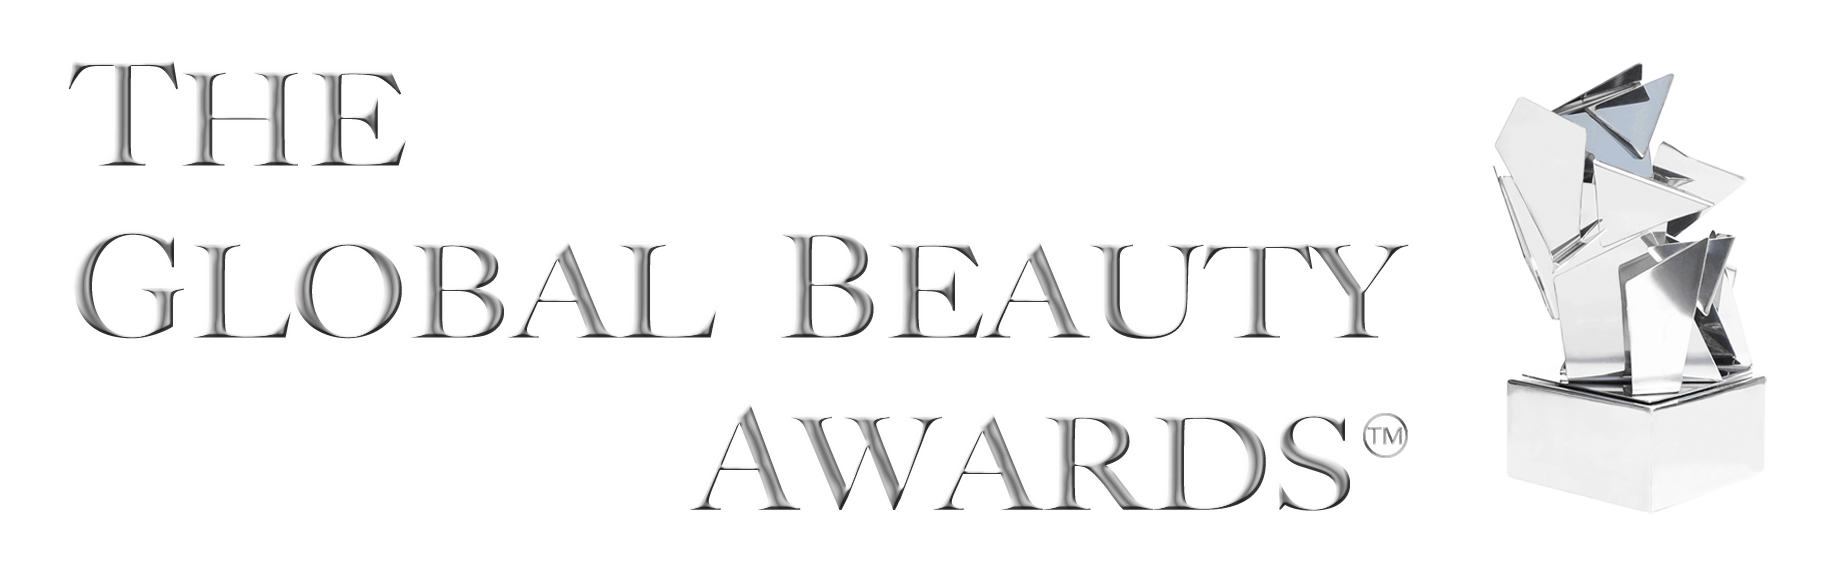 Winners – THE GLOBAL BEAUTY AWARDS